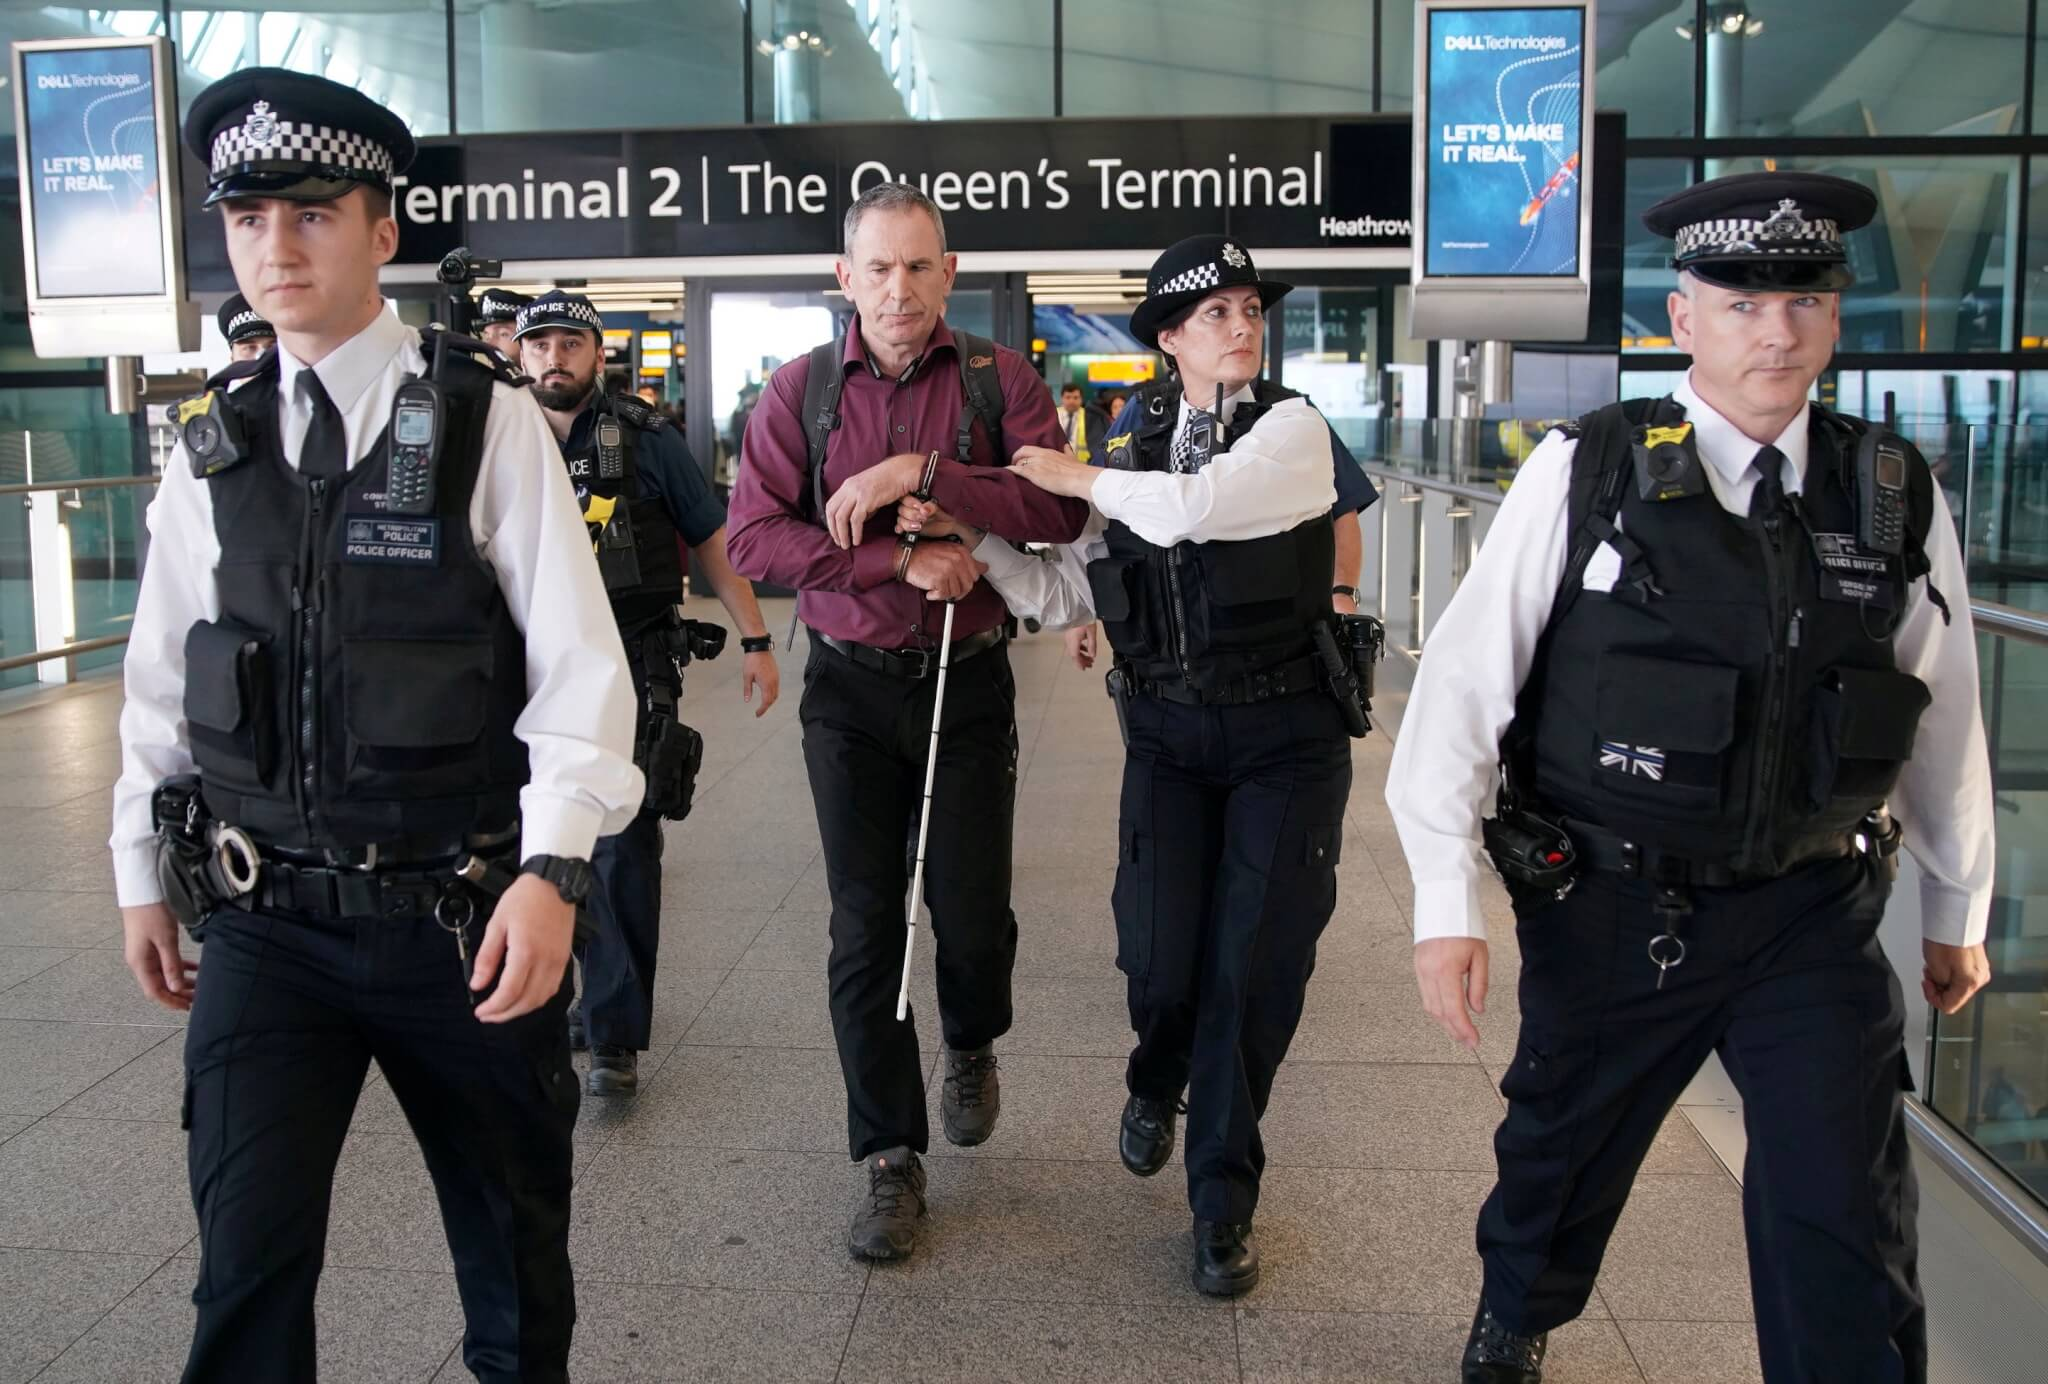 Eco-terrorists arrested at Heathrow Airport after failed 'drone protest'